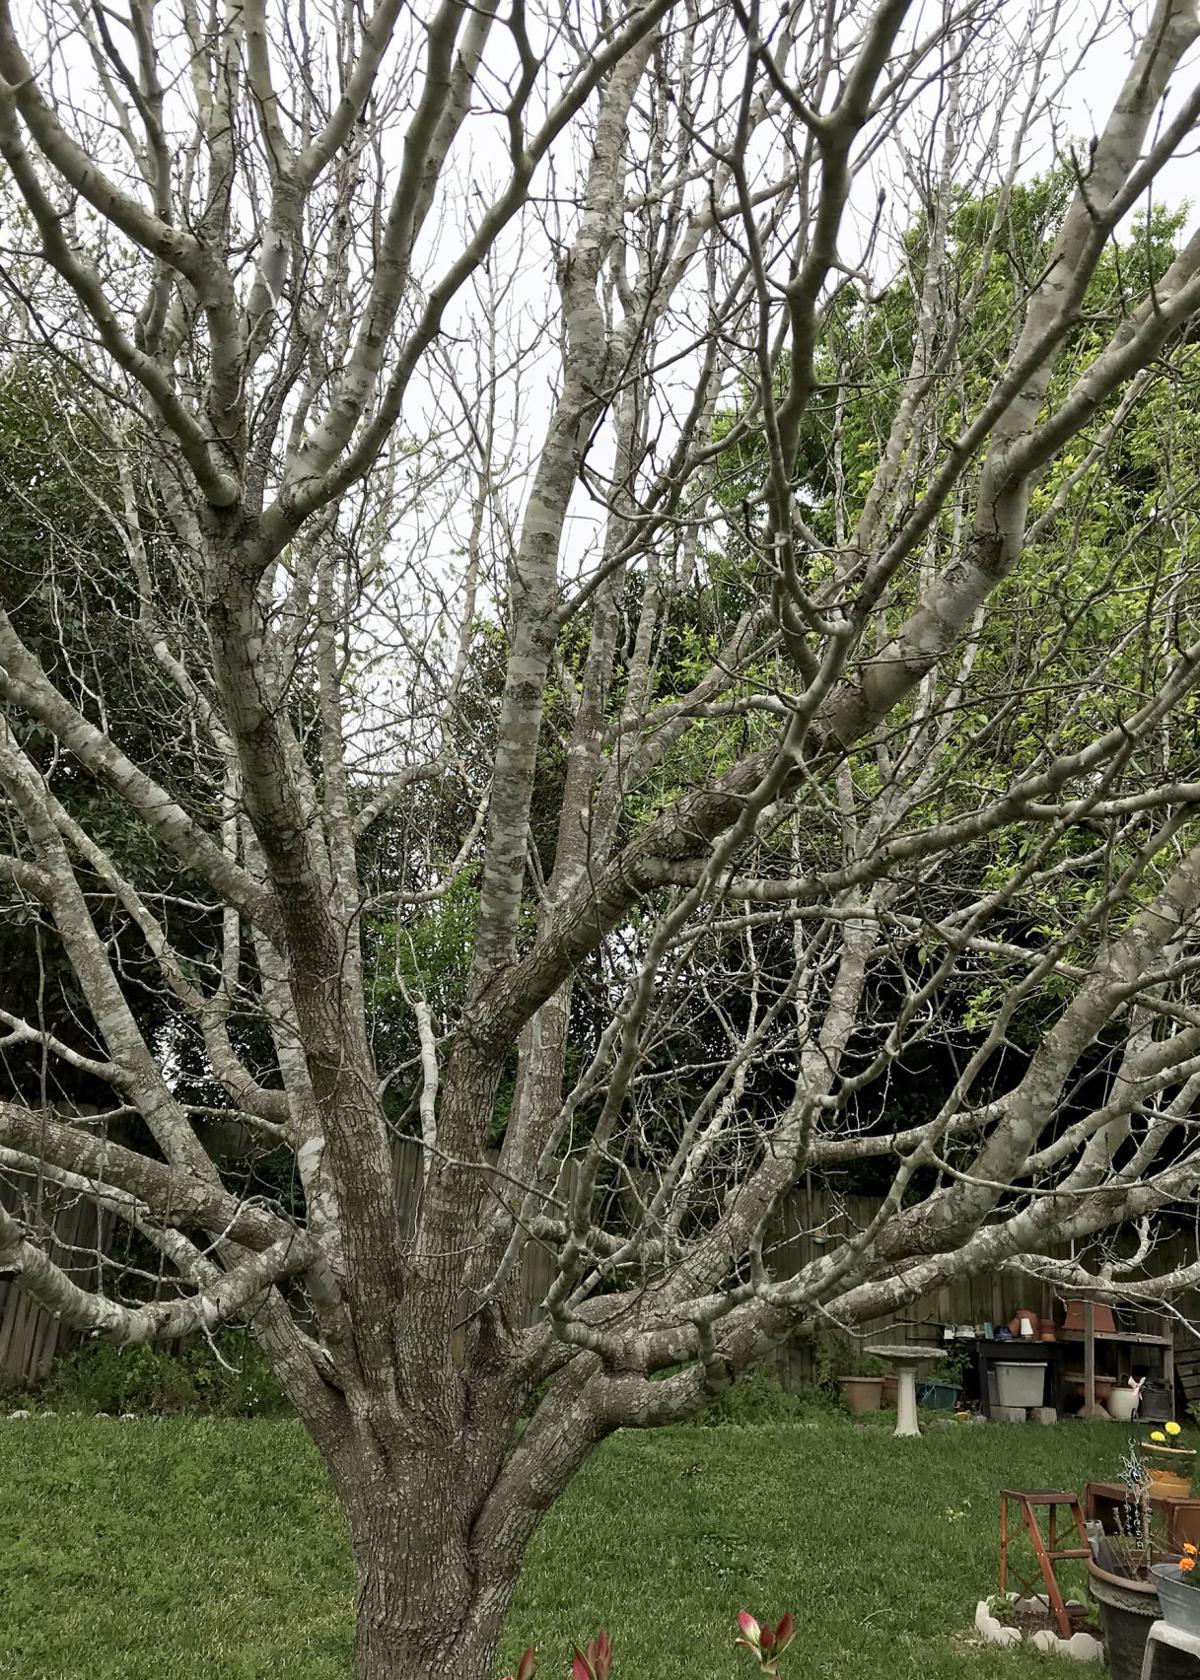 Sperry Pear Weeping Willow Have Short Lifespan Play News